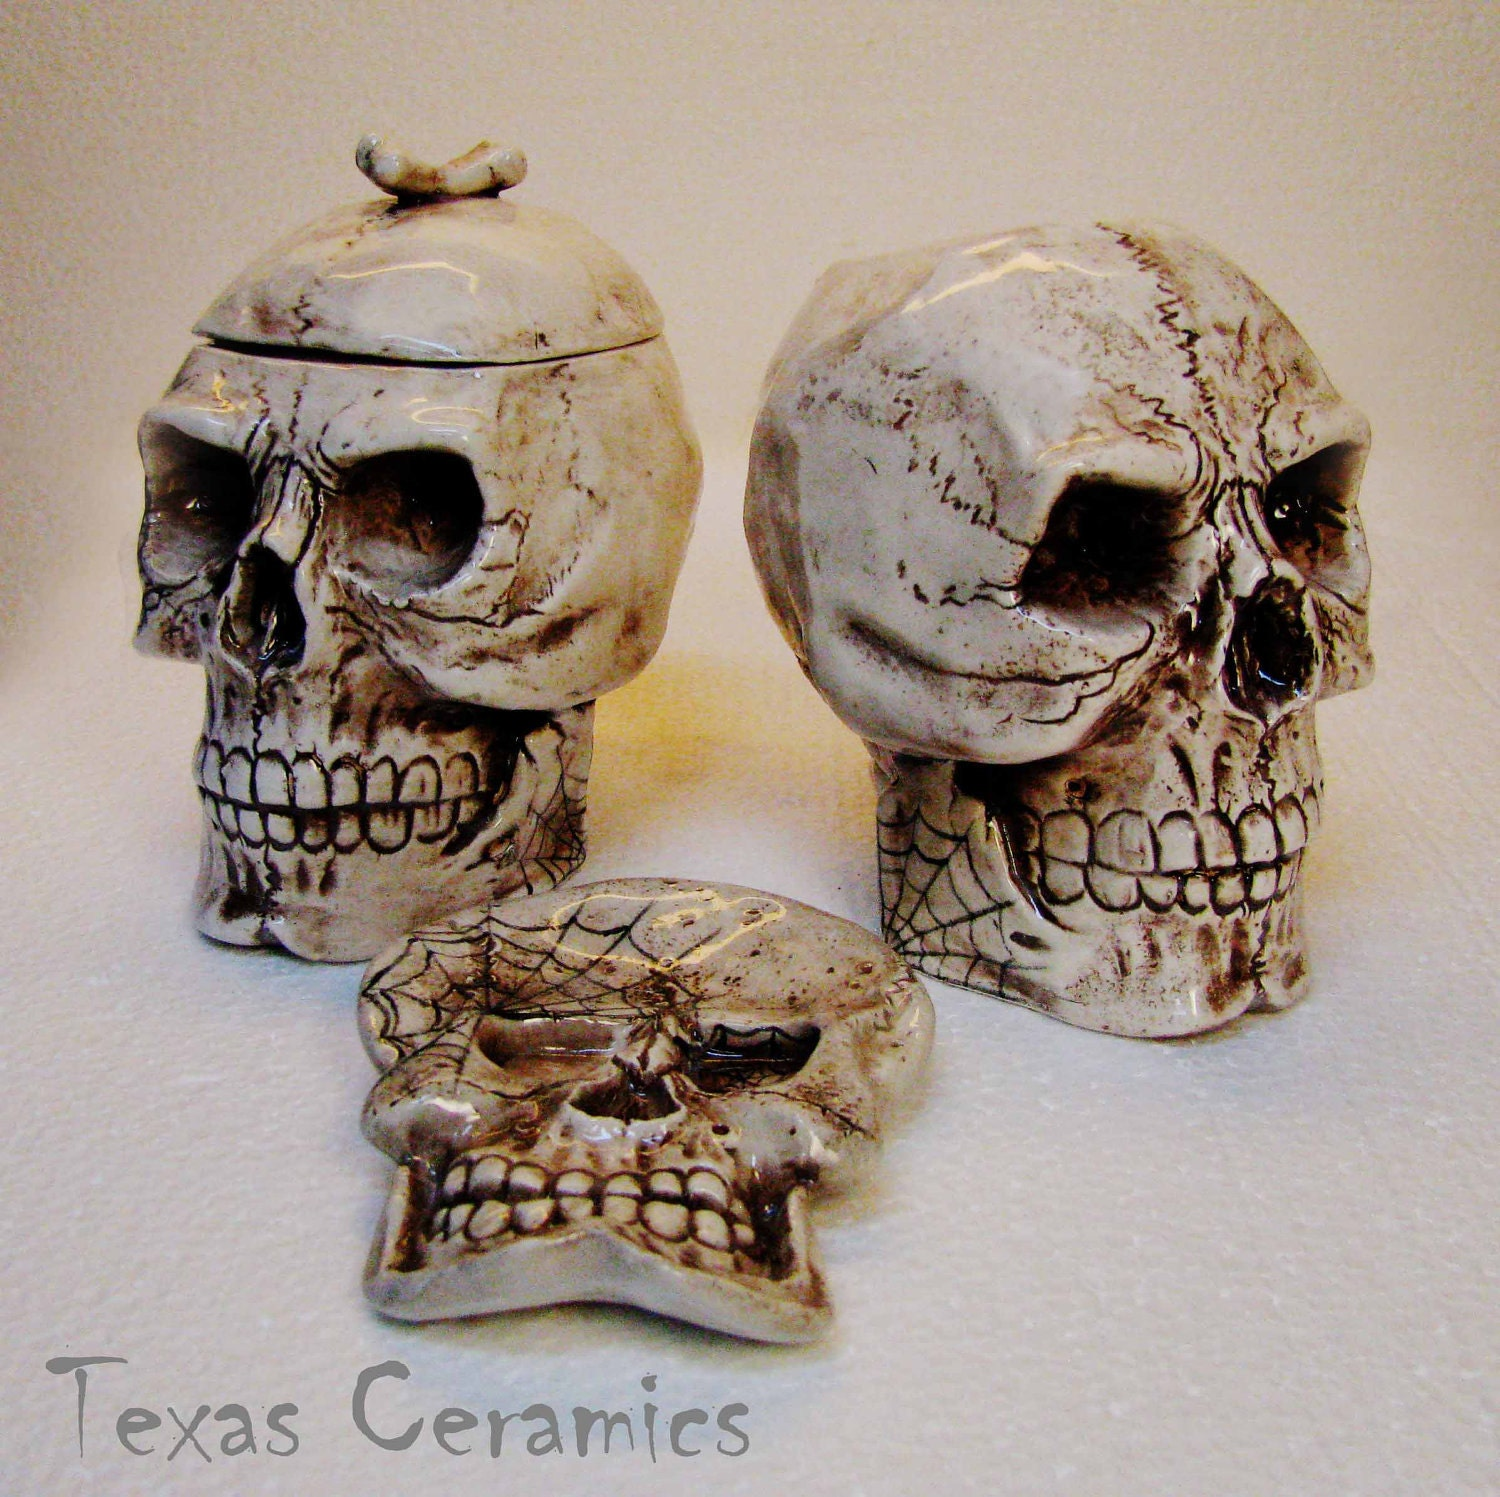 Aged Human Skull Ceramic Creamer Amp Sugar Bowl With Skull Spoon